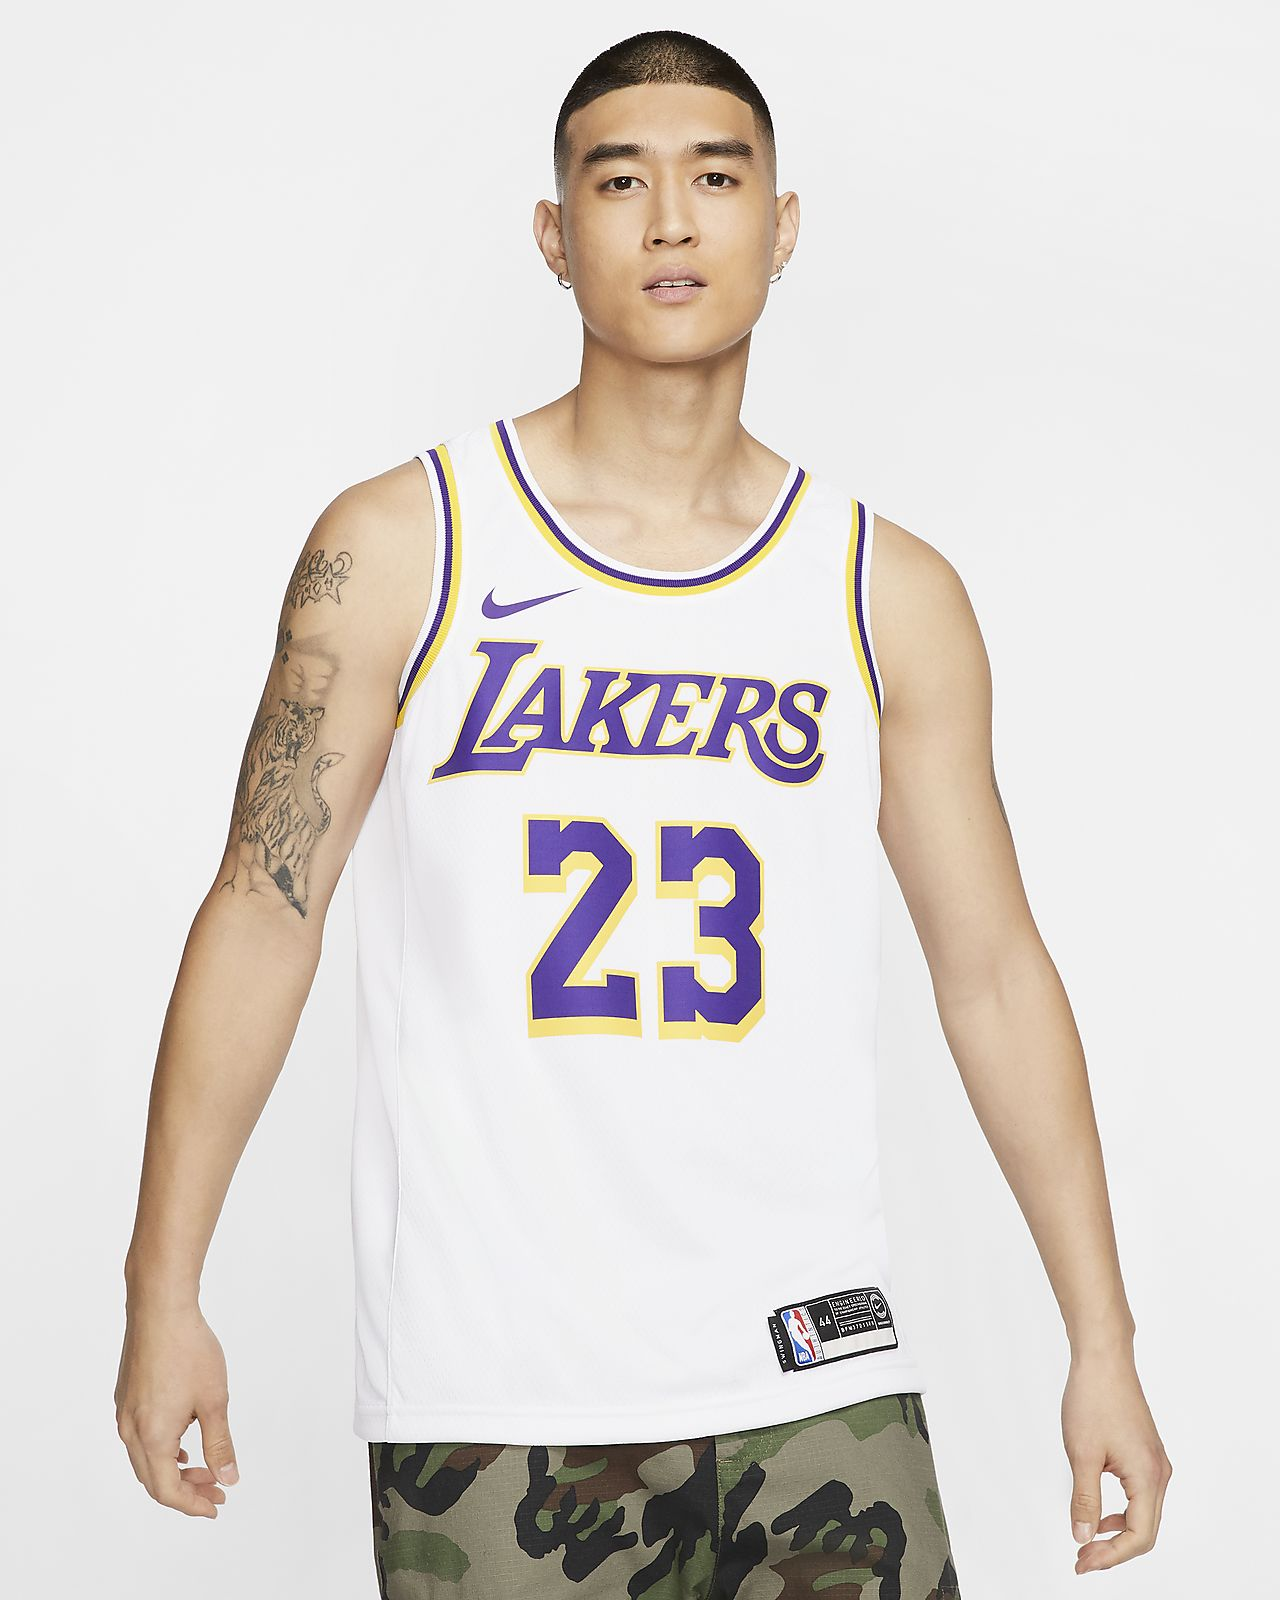 Camisola com ligação à NBA da Nike LeBron James Association Edition Swingman (Los Angeles Lakers) para homem